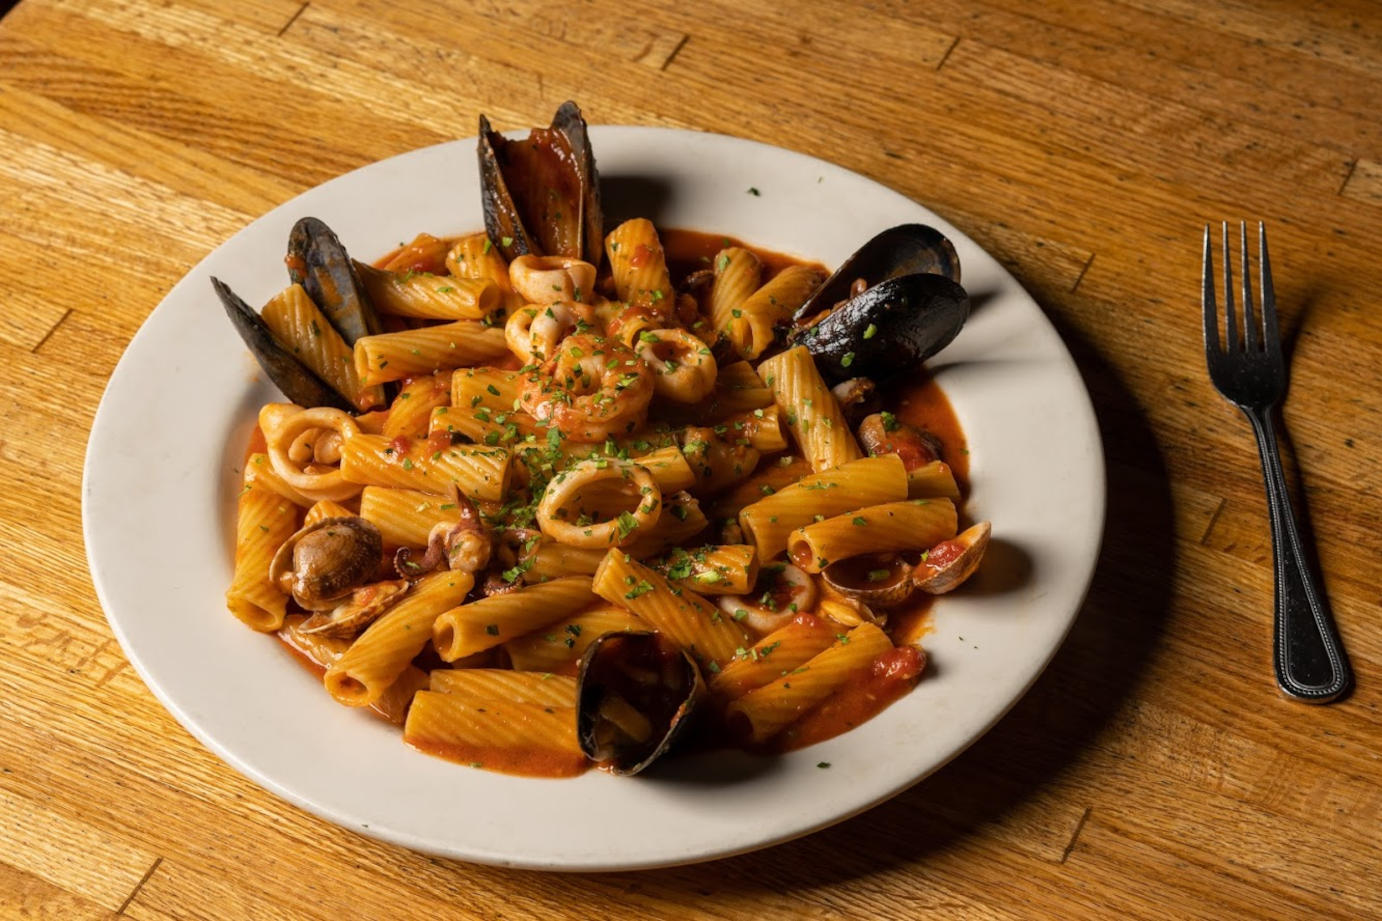 Pasta with mussels and seafood sauce